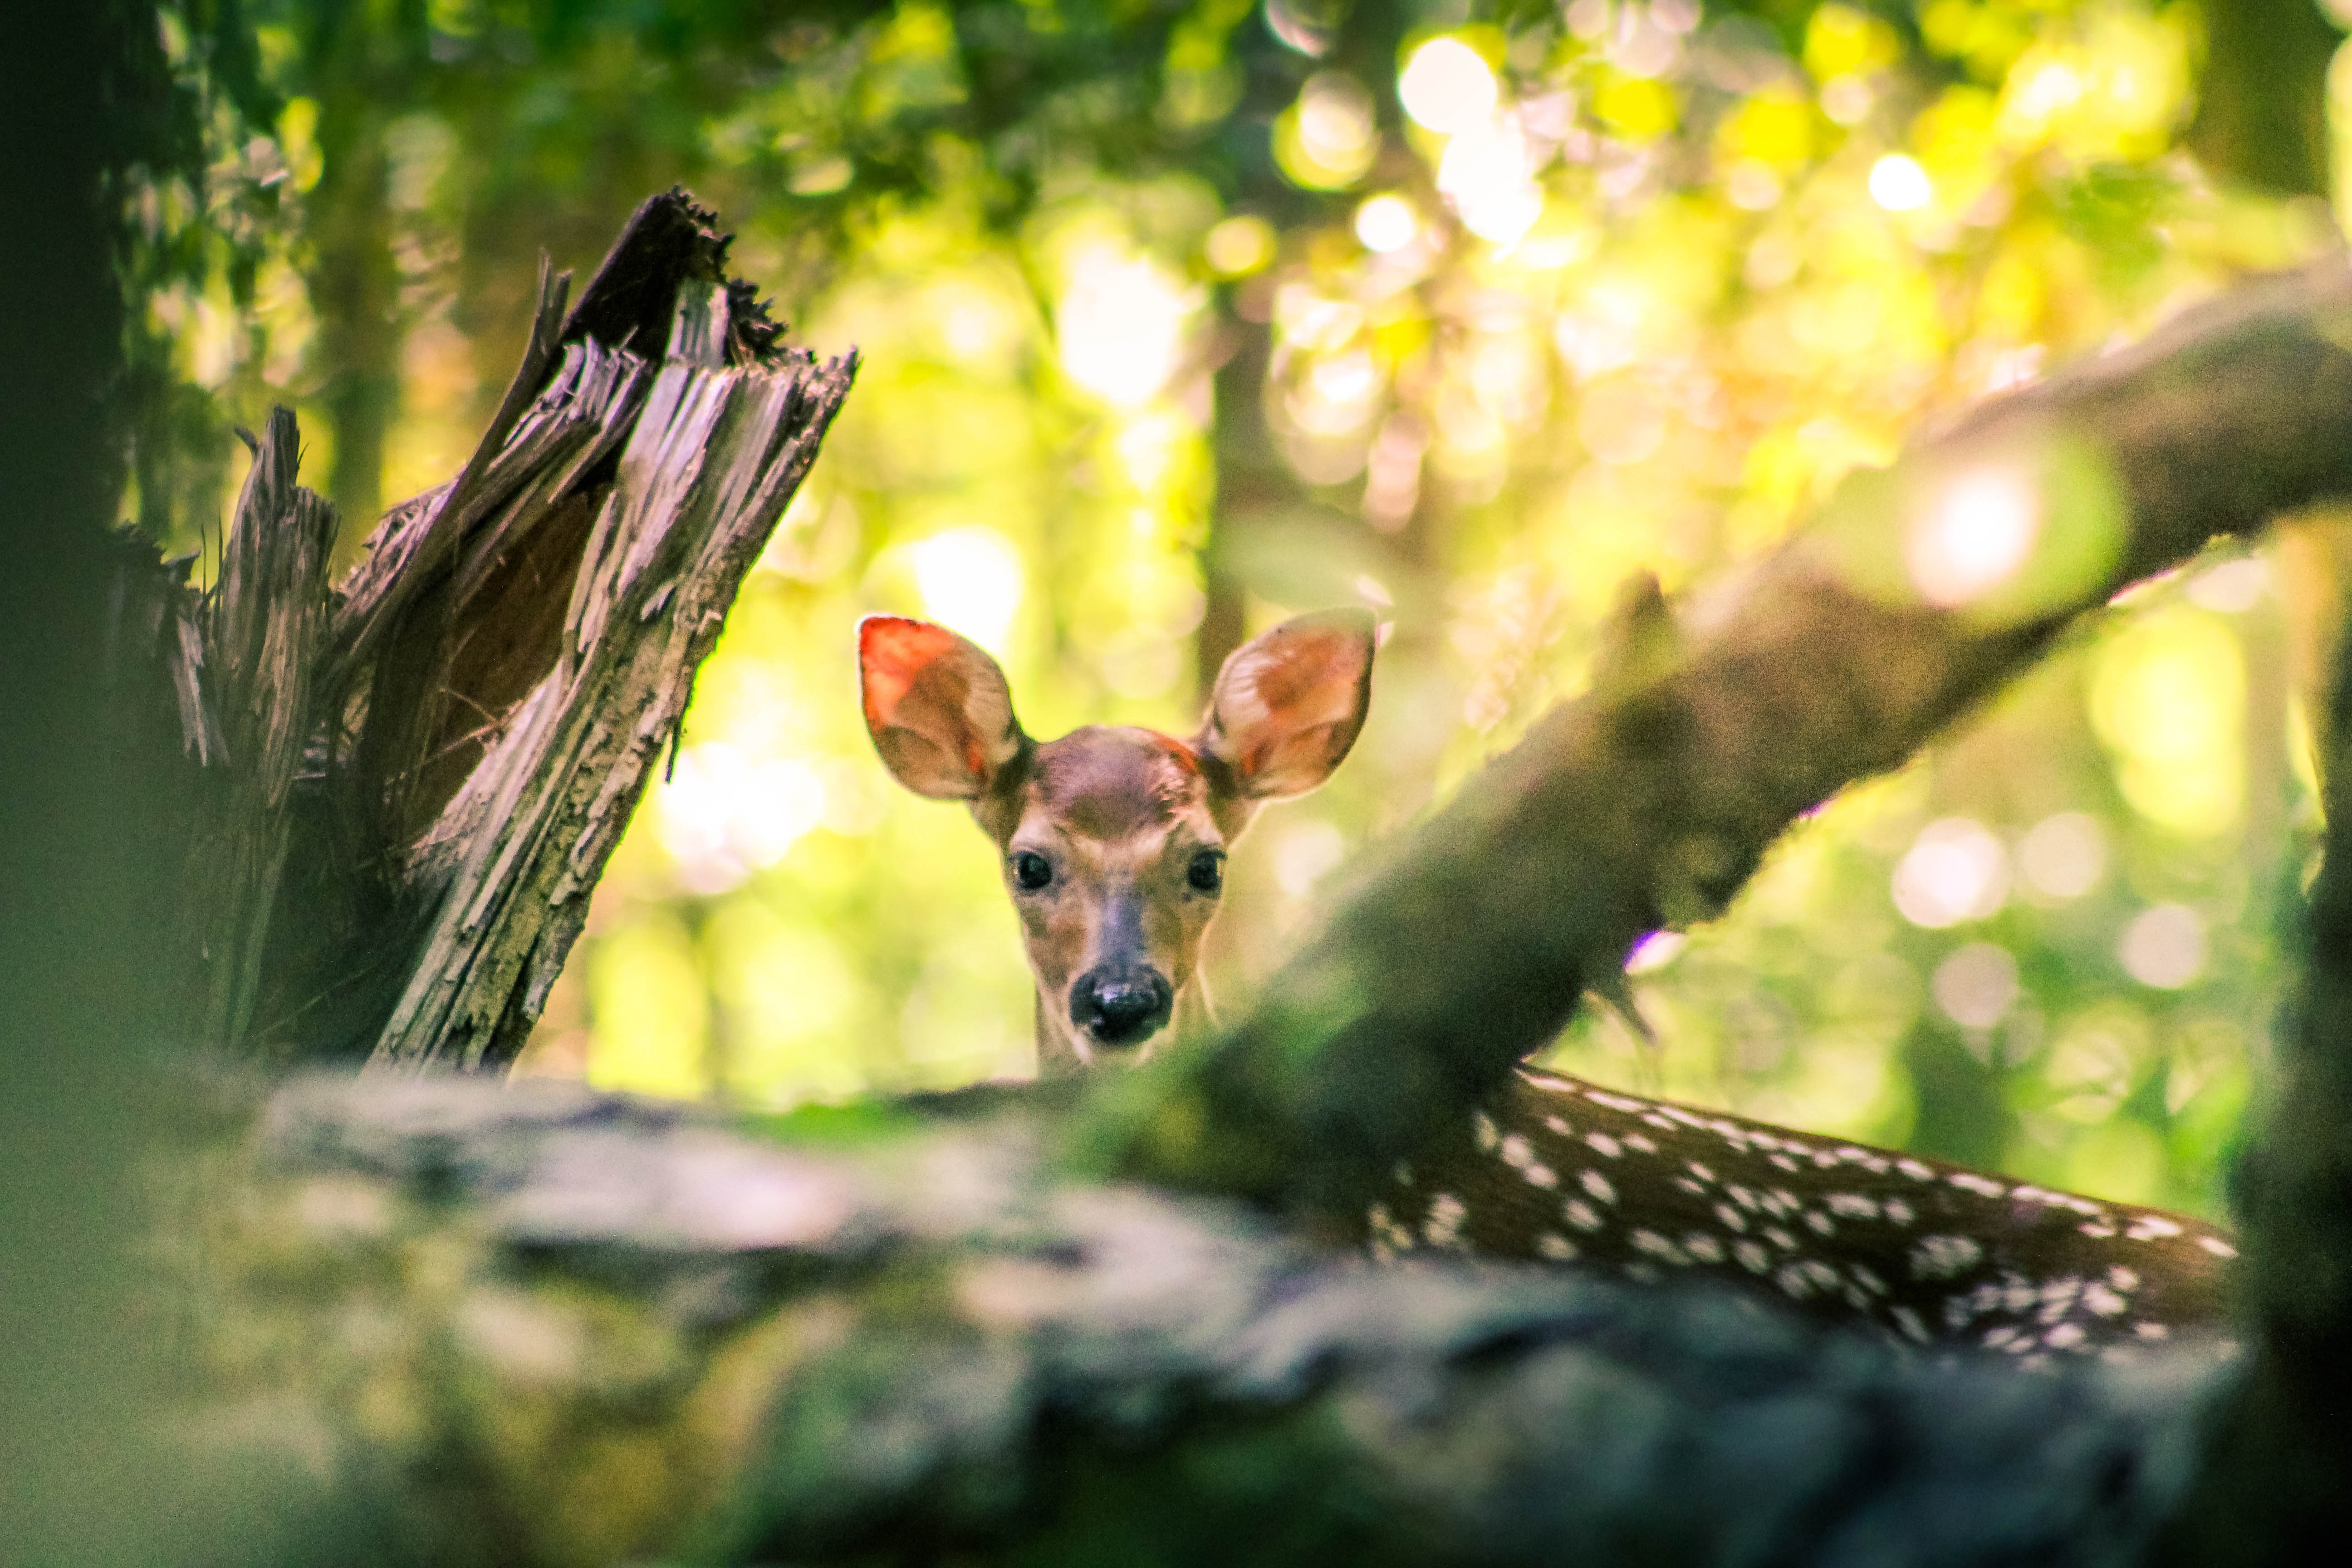 selective focus photography of brown deer under trees during daytime